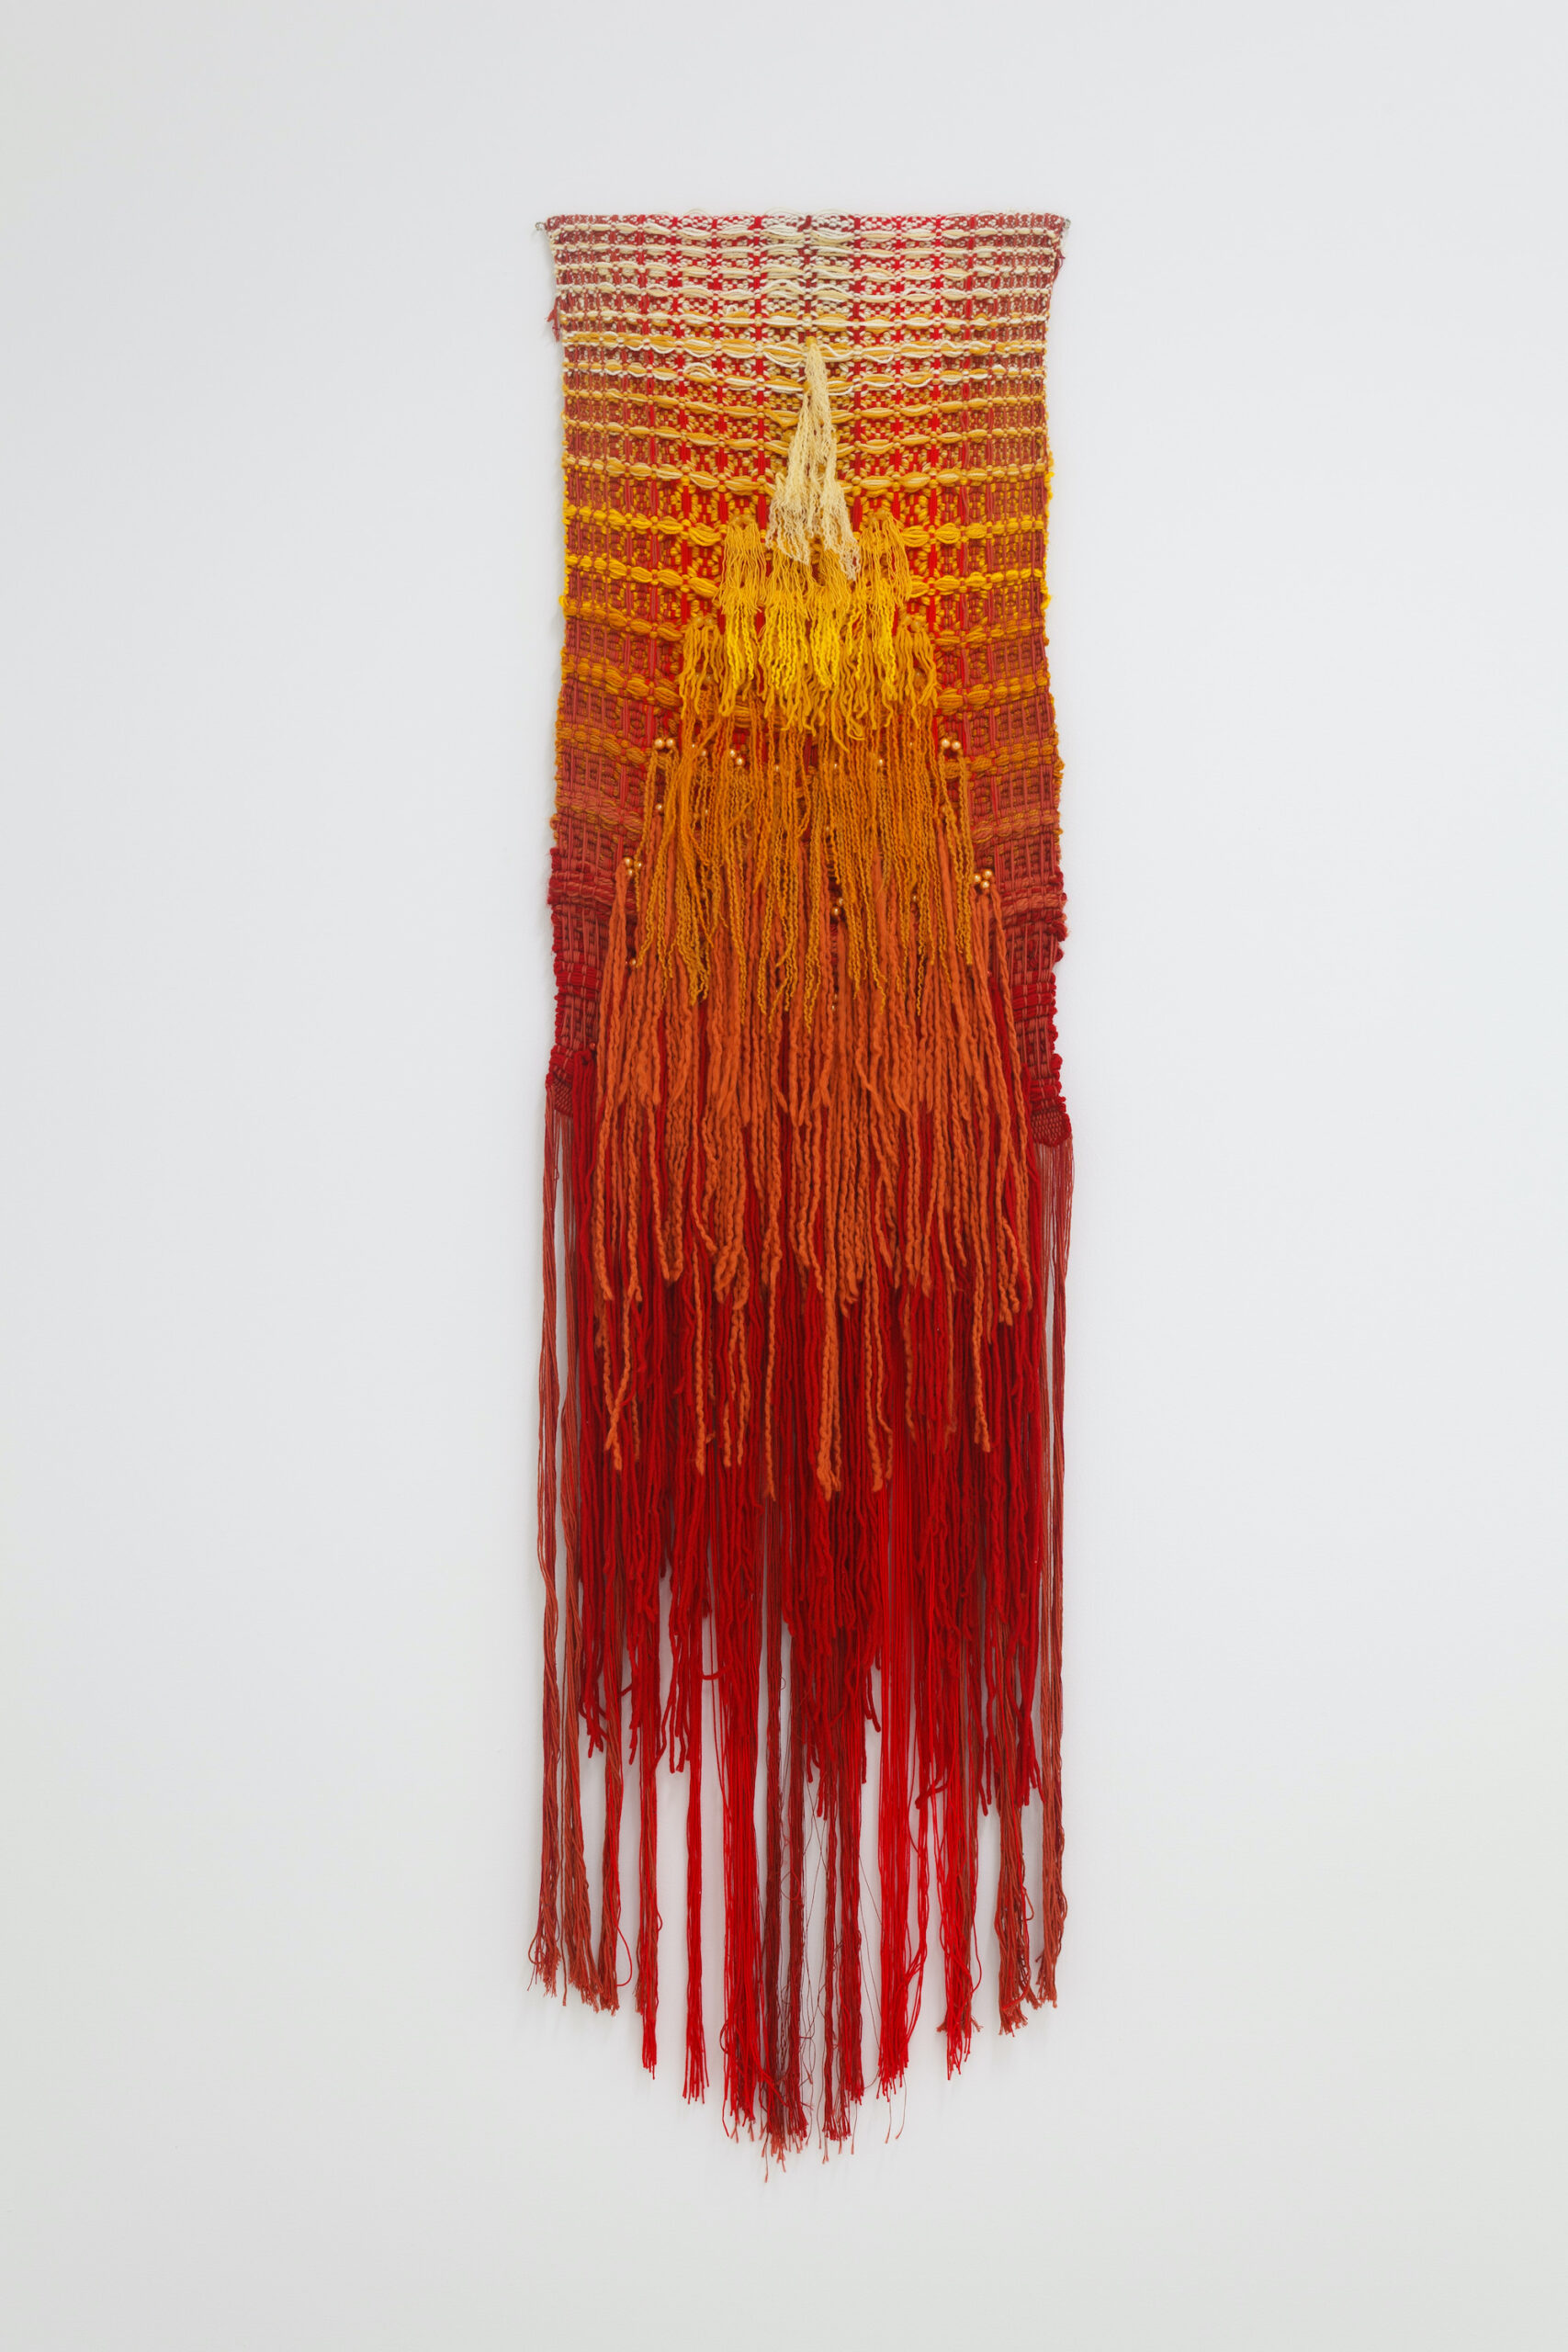 Katrina Coombs, Her Constellation, 2020, Hand woven mixed natural fibers and beads, 18 x 20 inches, Emerson Dorsch, Miami FL (1)